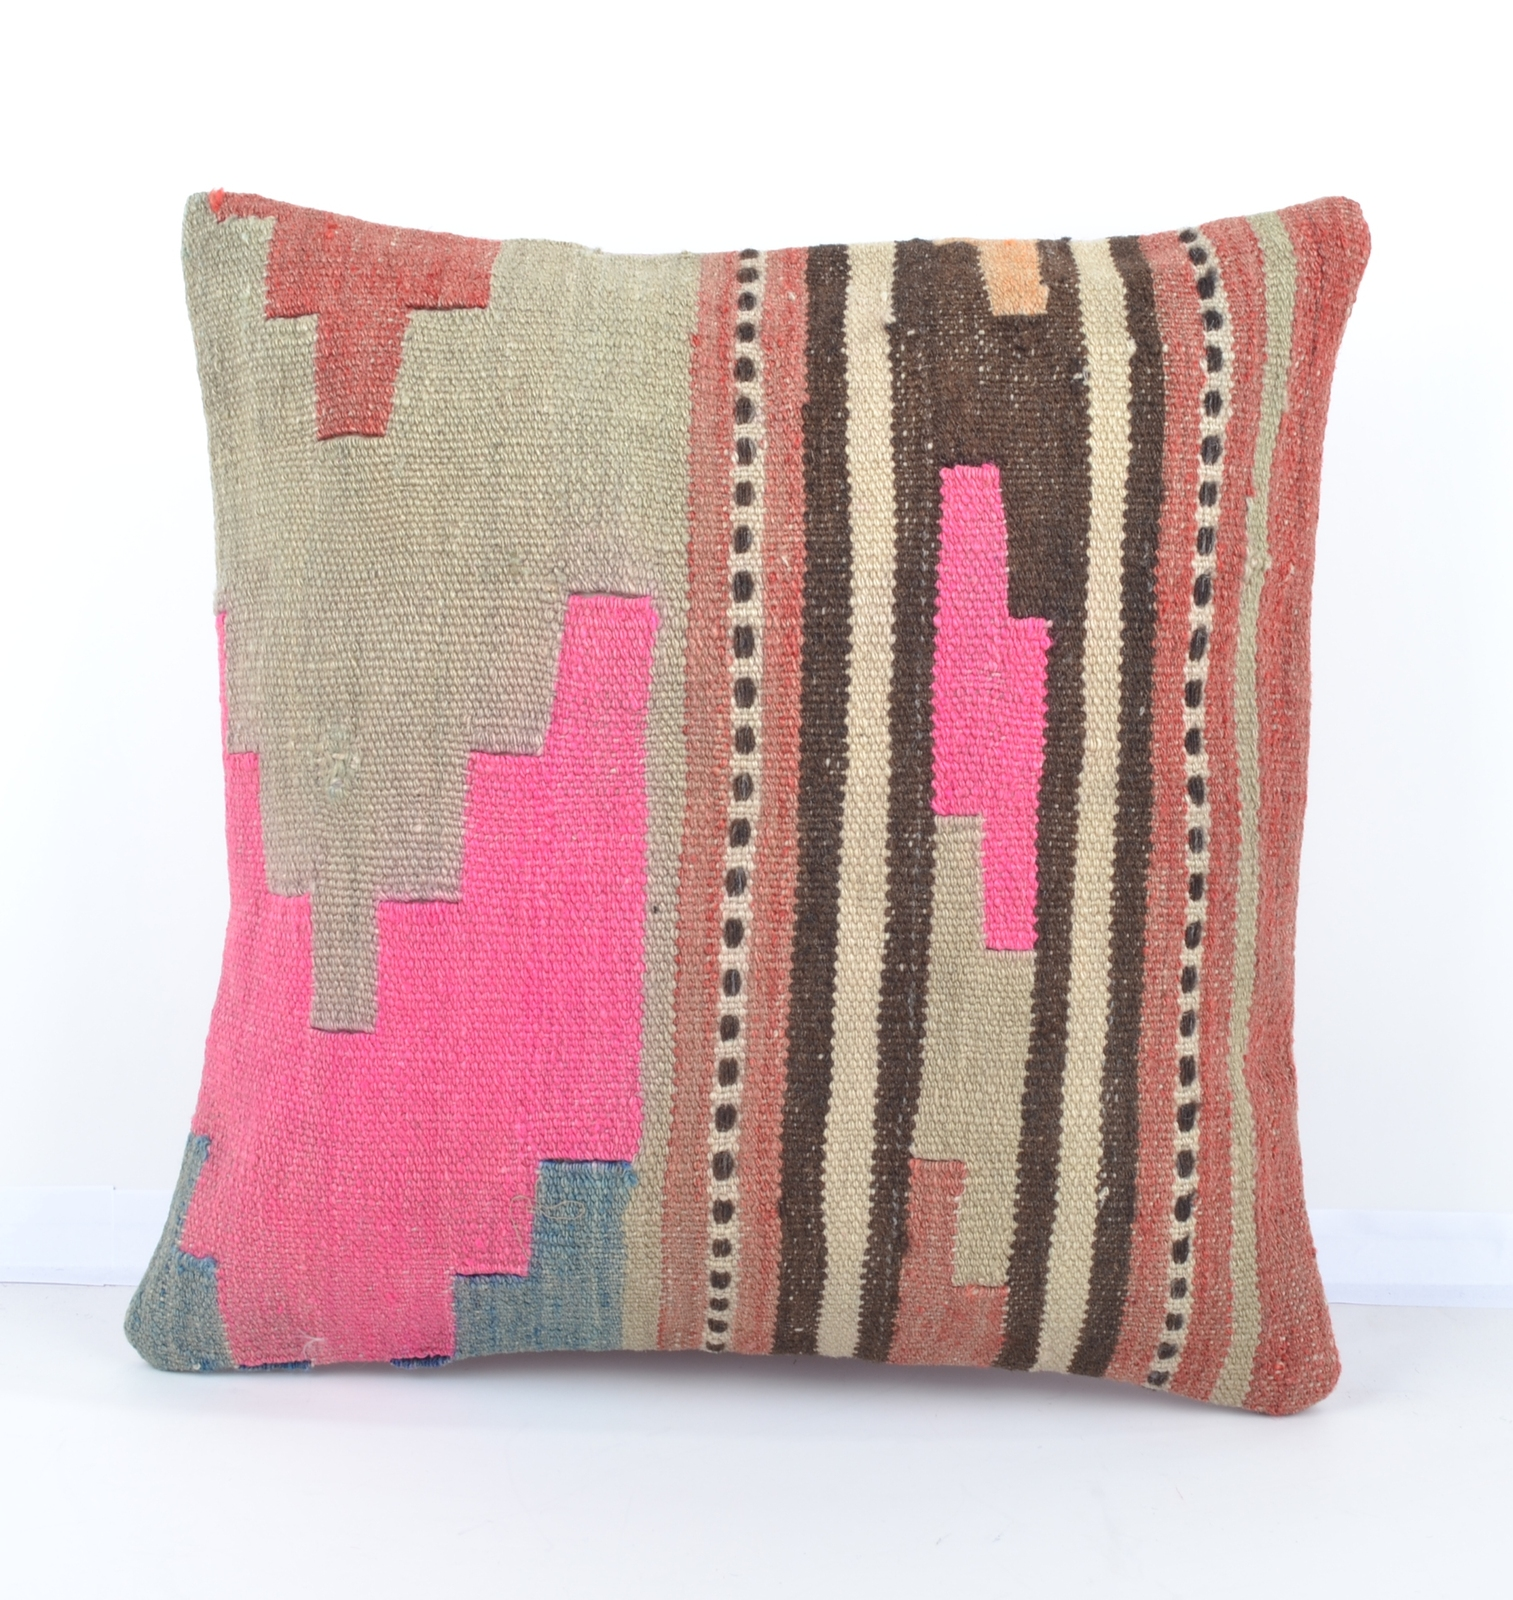 geometric pillow,colorful knitting pillow,couch pillows,knitting patterns pil...